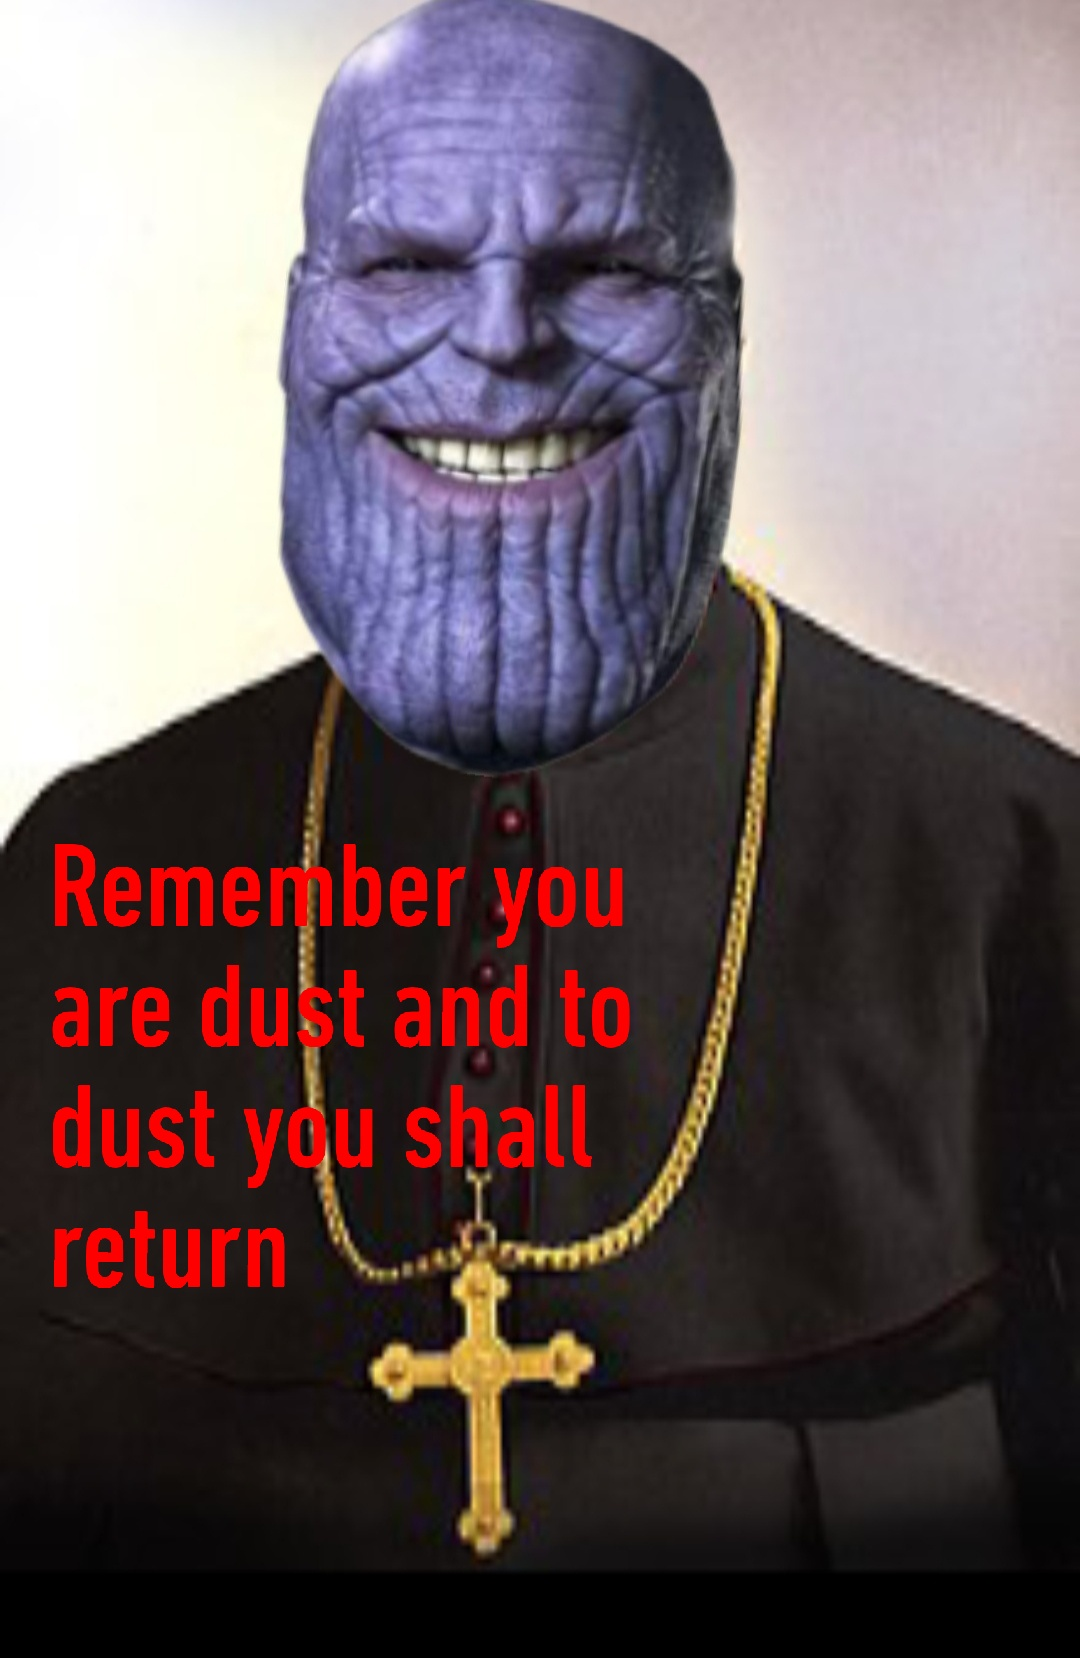 Thanos Ash Wednesday Meme 2020